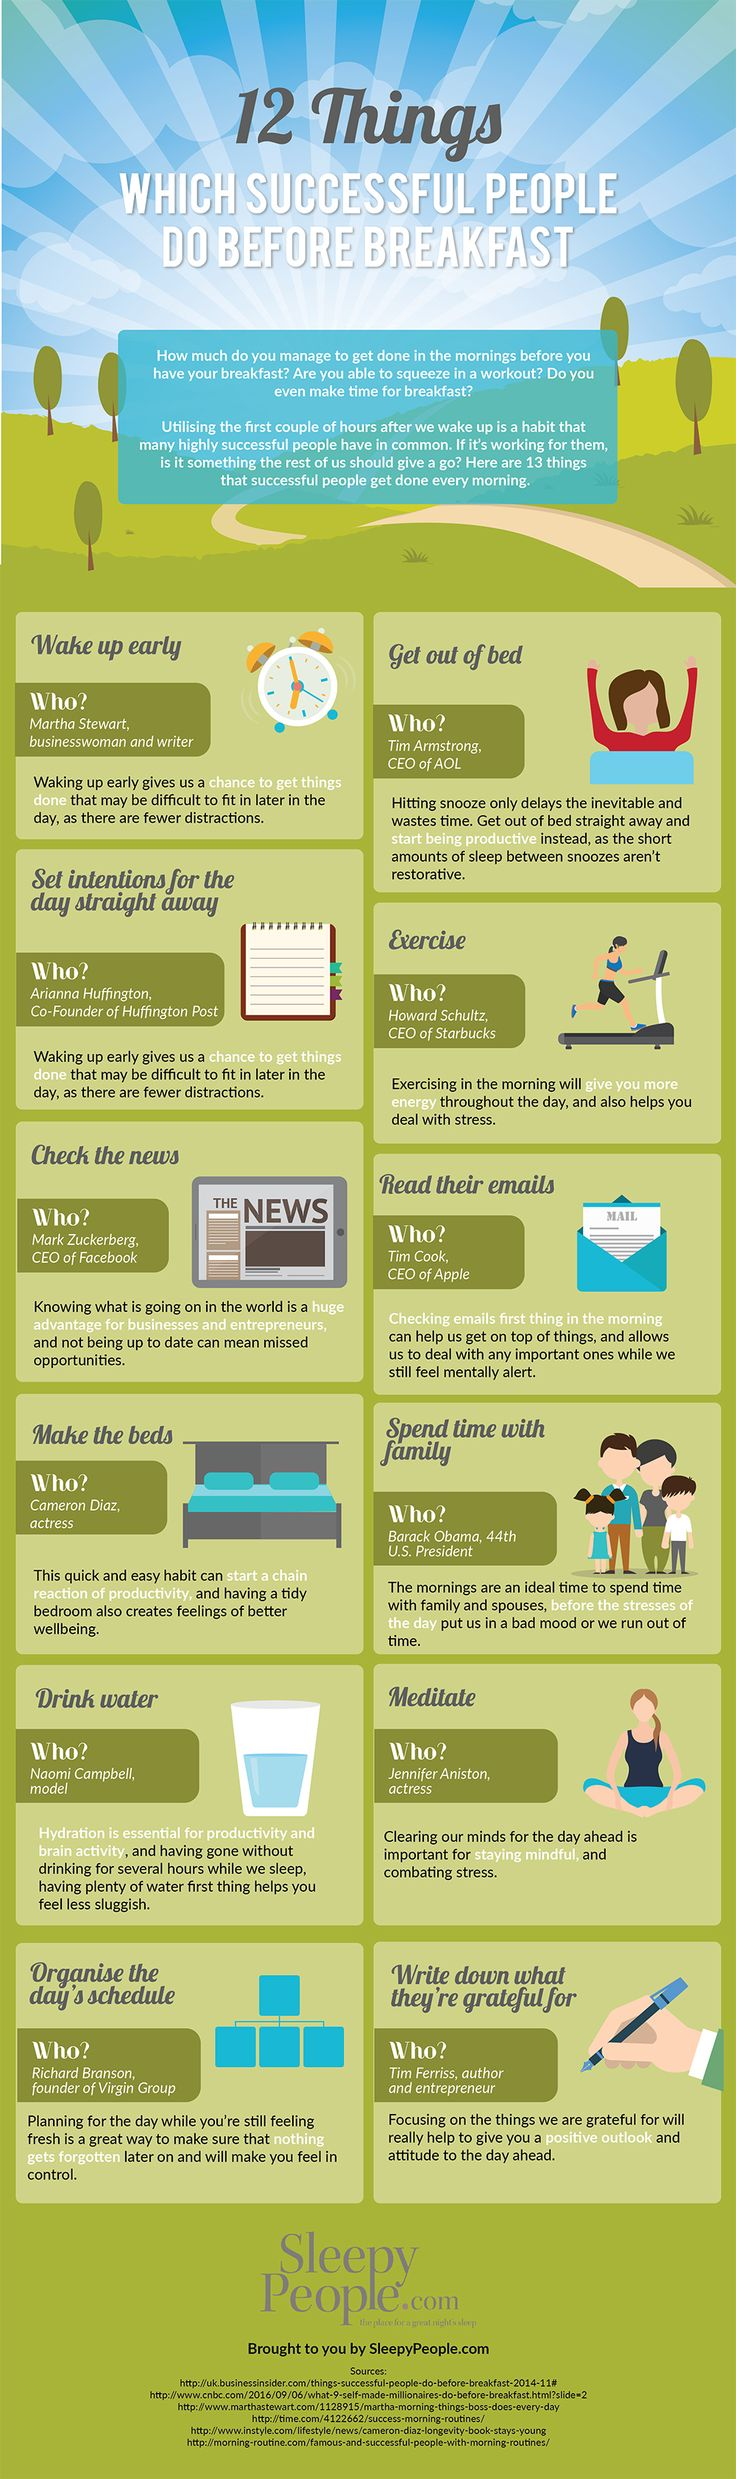 Psychology-Infographic-12-Things-Successful-People-Do-Before-Breakfast-Infographic Psychology Infographic : 12 Things Successful People Do Before Breakfast #Infographic #Business #Startup ...